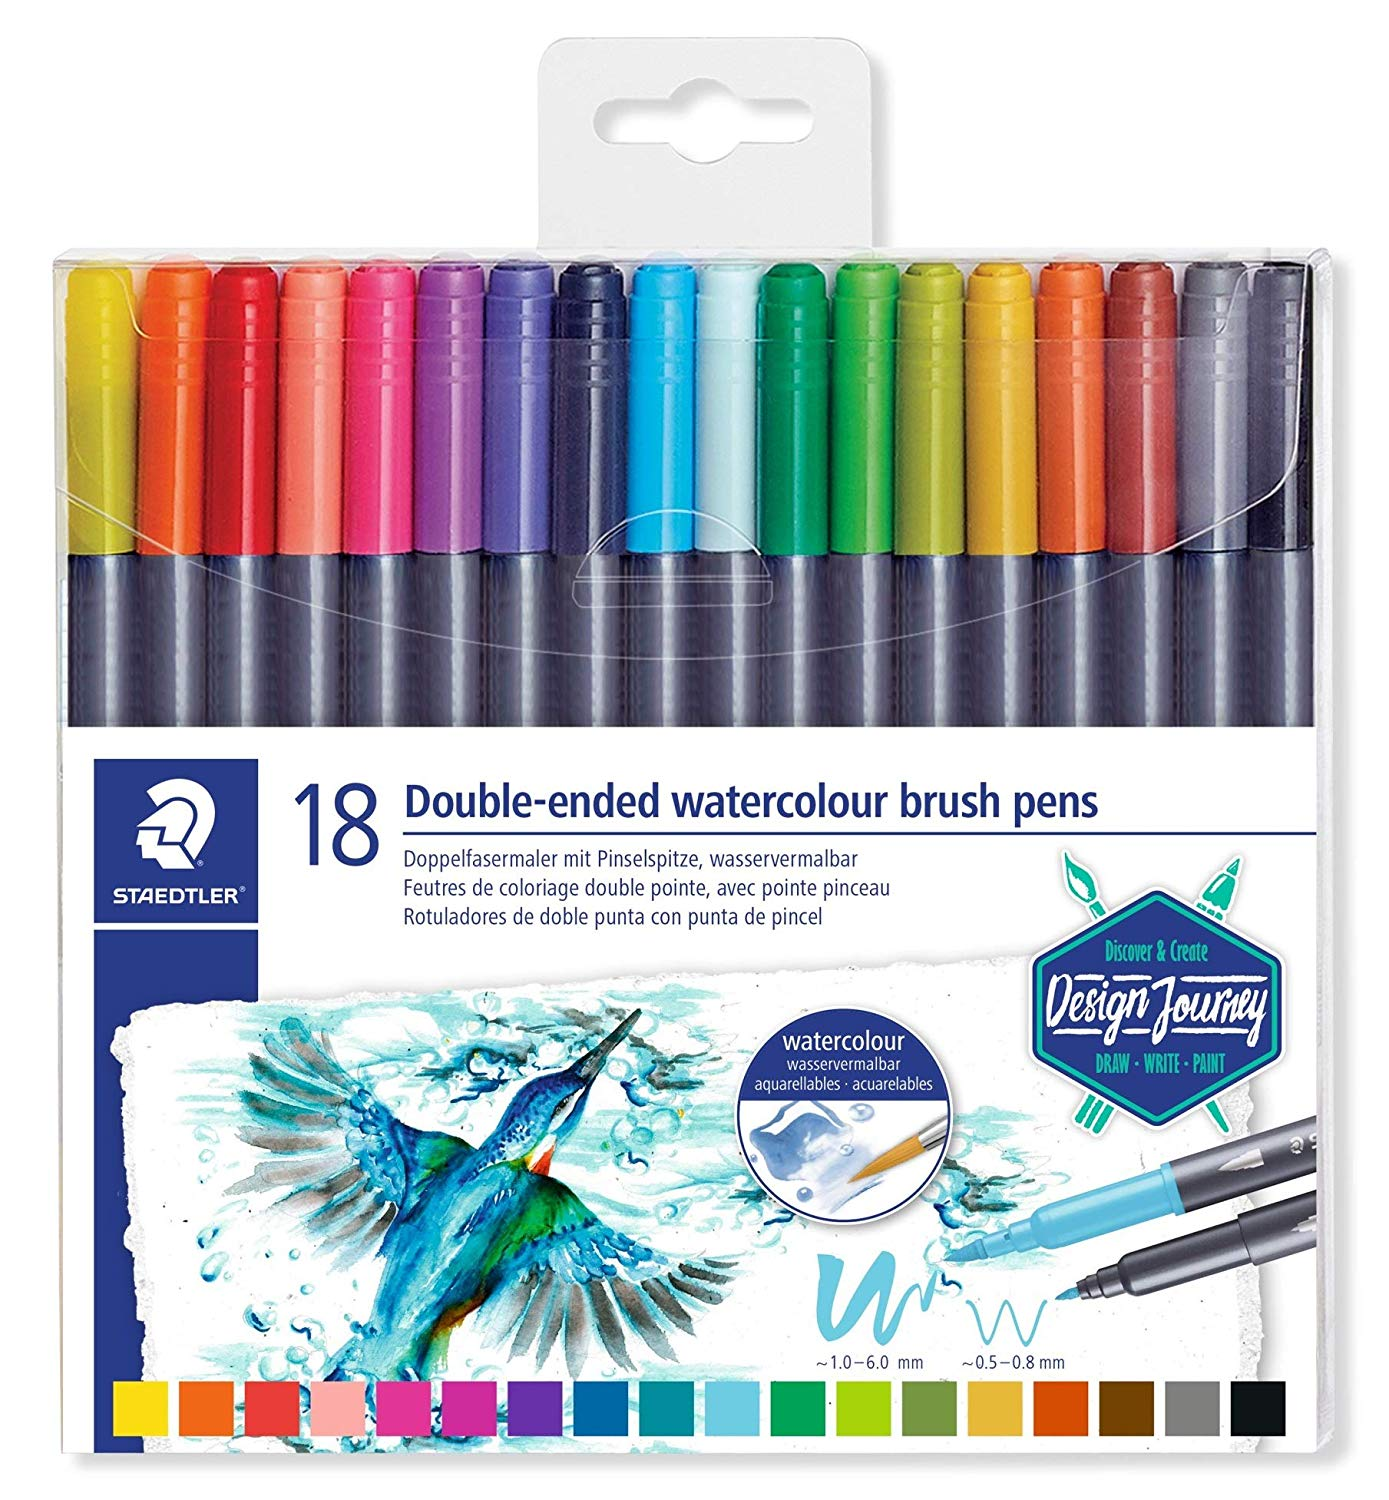 Staedtler Double-Ended Watercolour Brush Pens - Set of 18